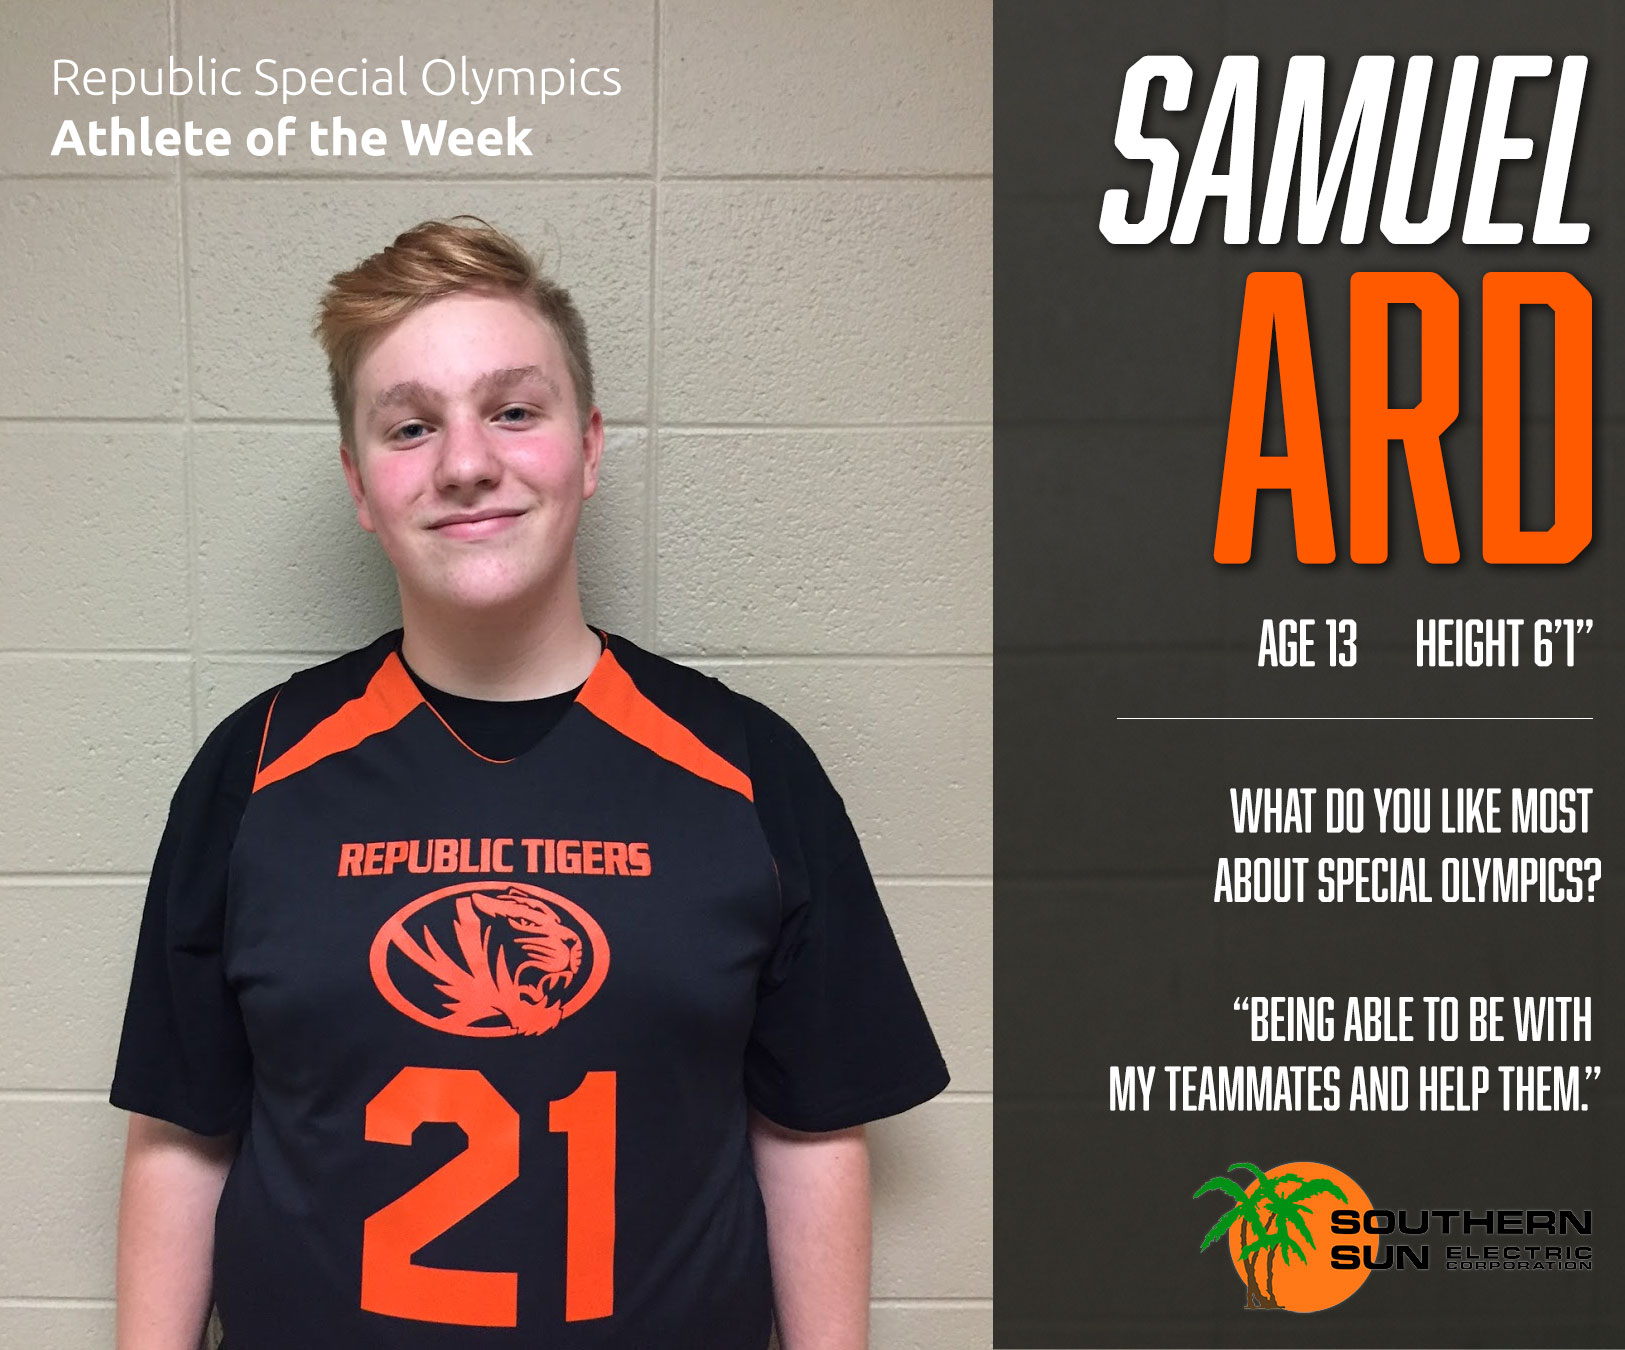 Special Olympics Athlete Of The Week: Samuel Ard